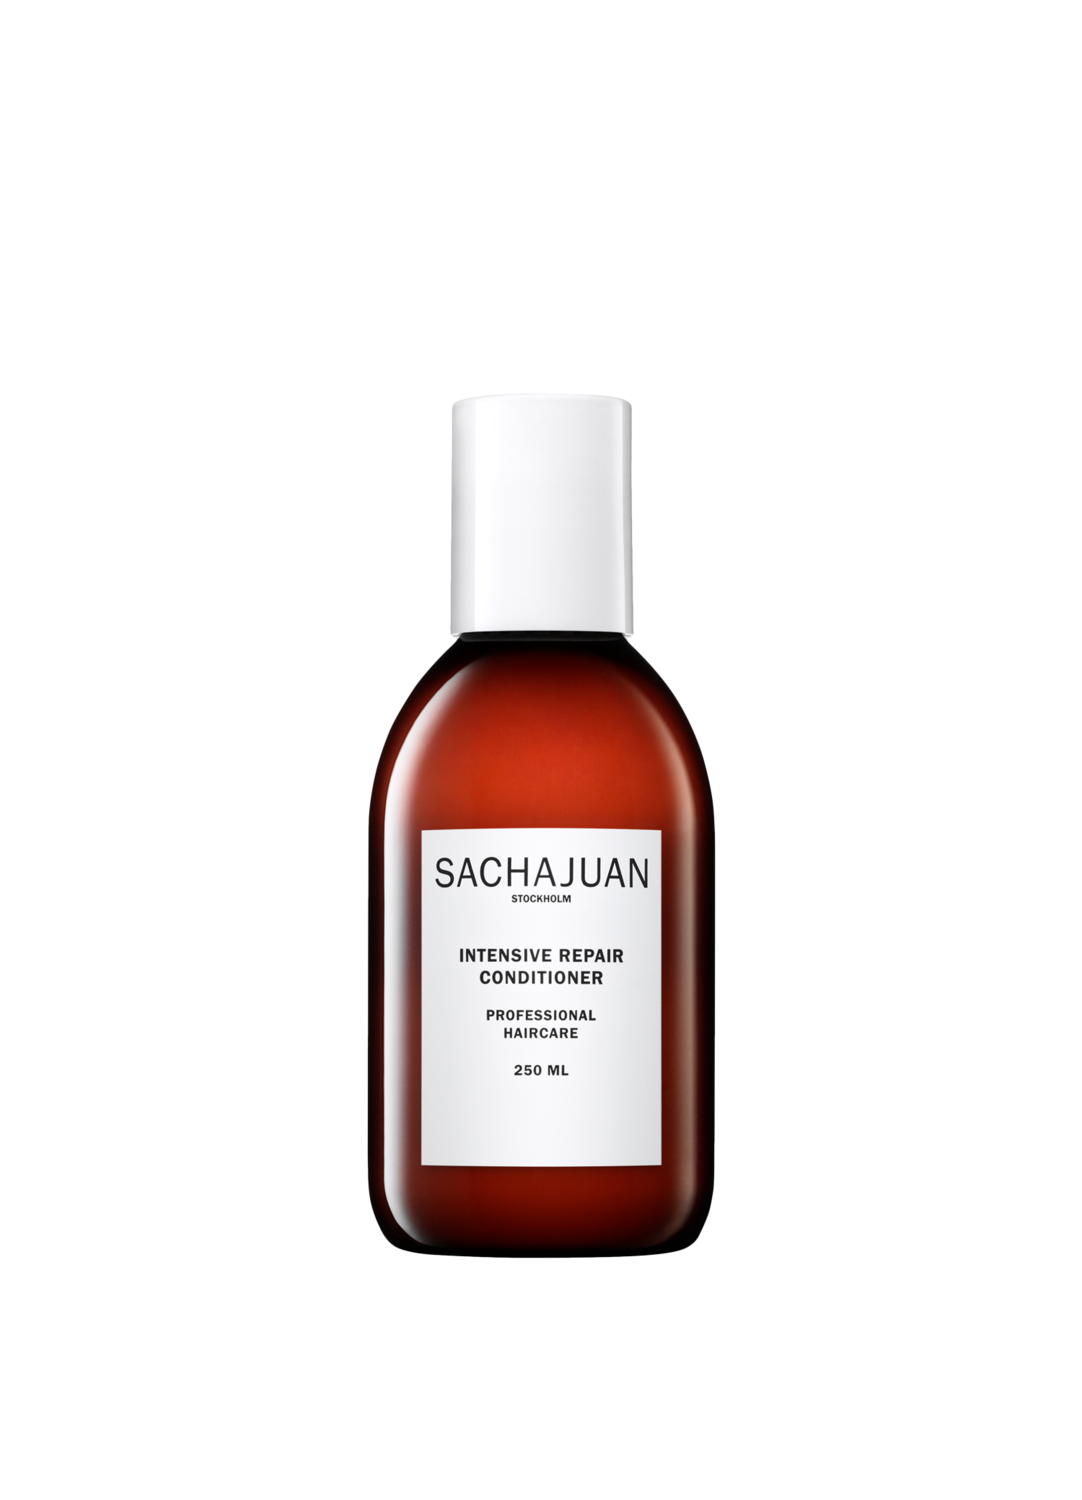 sachajuan | intensive repair conditioner[product_type ]sachajuan - Kiss and Makeup